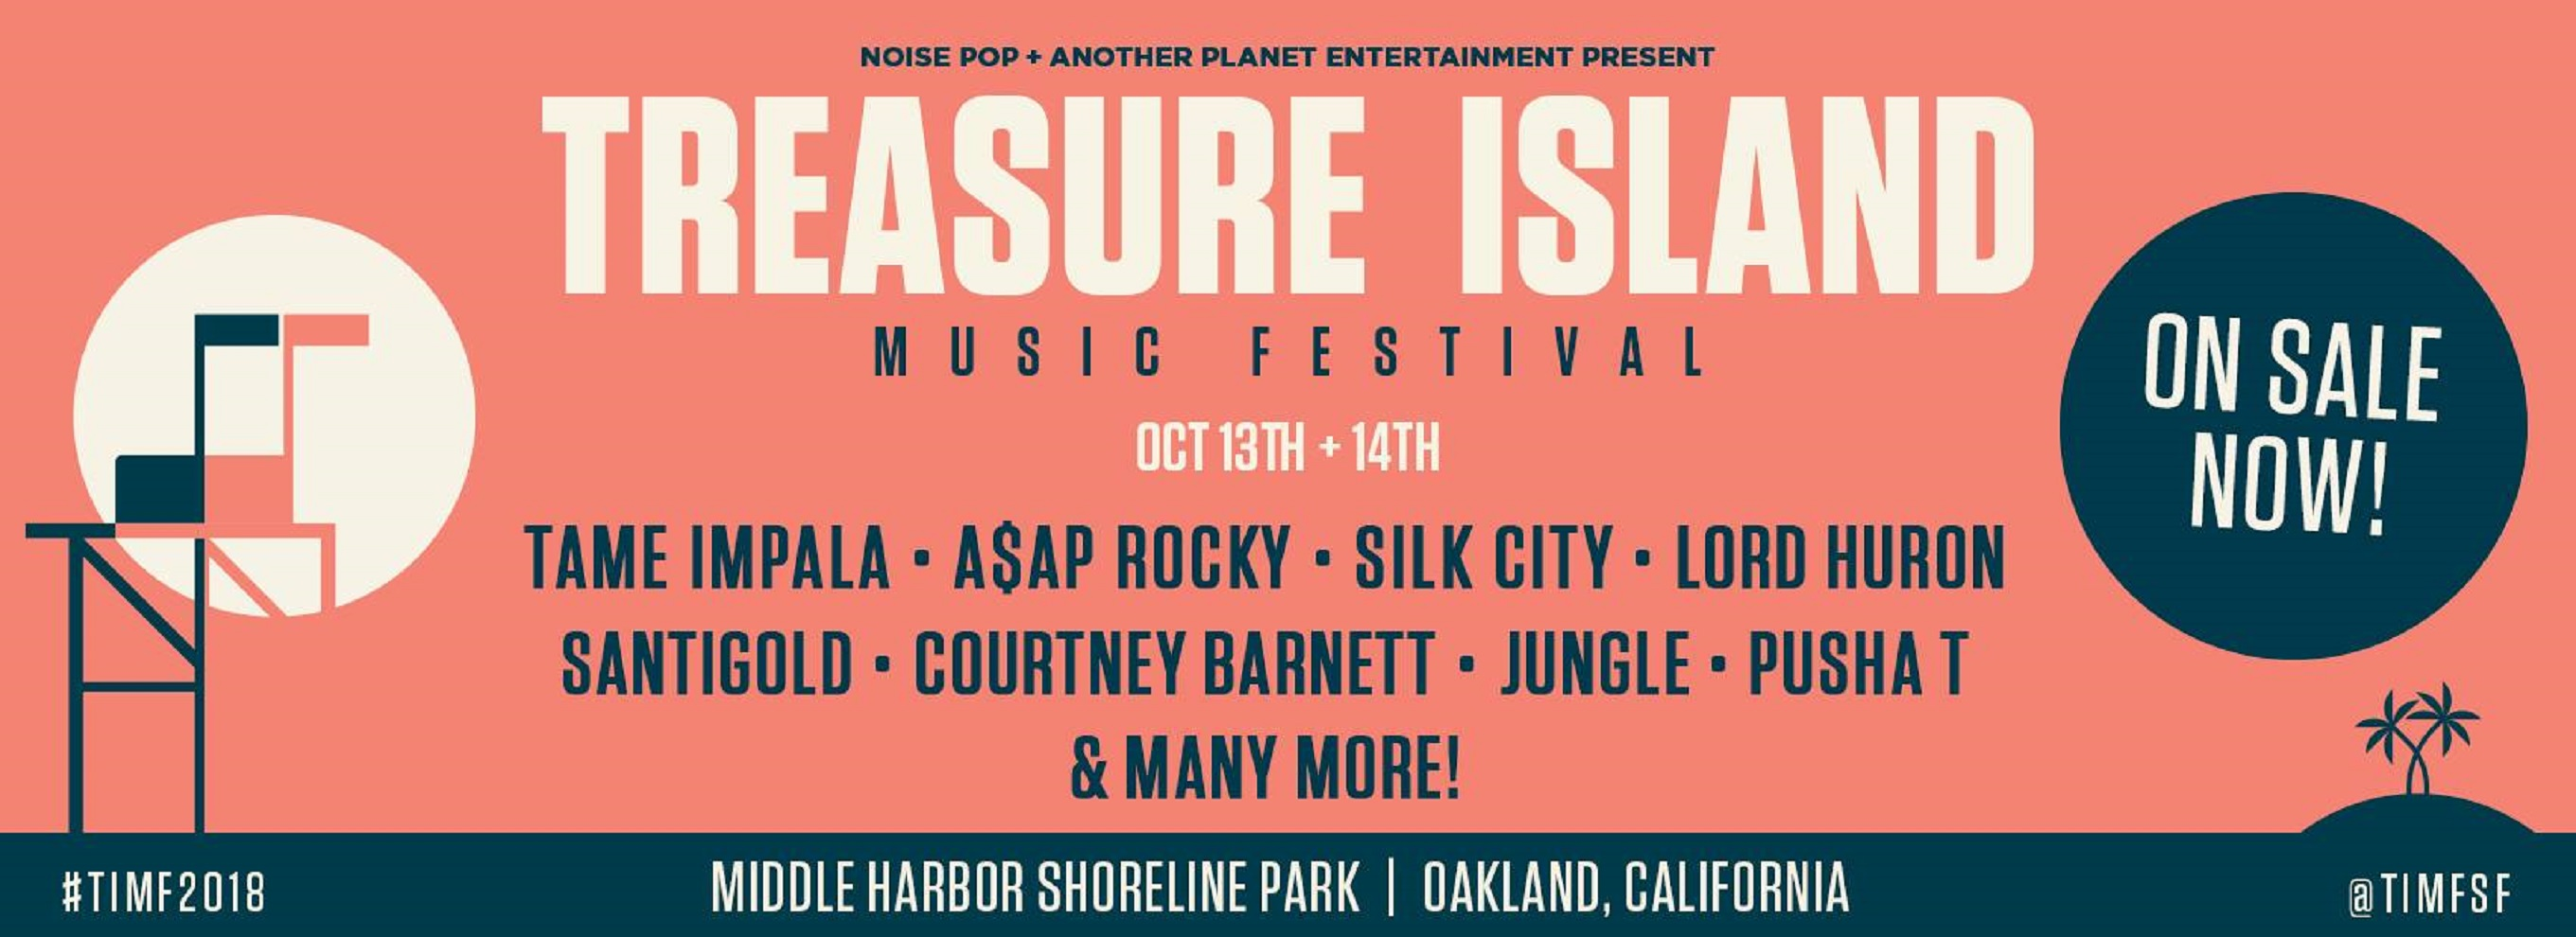 Treasure Island Music Festival Announces Full Schedule